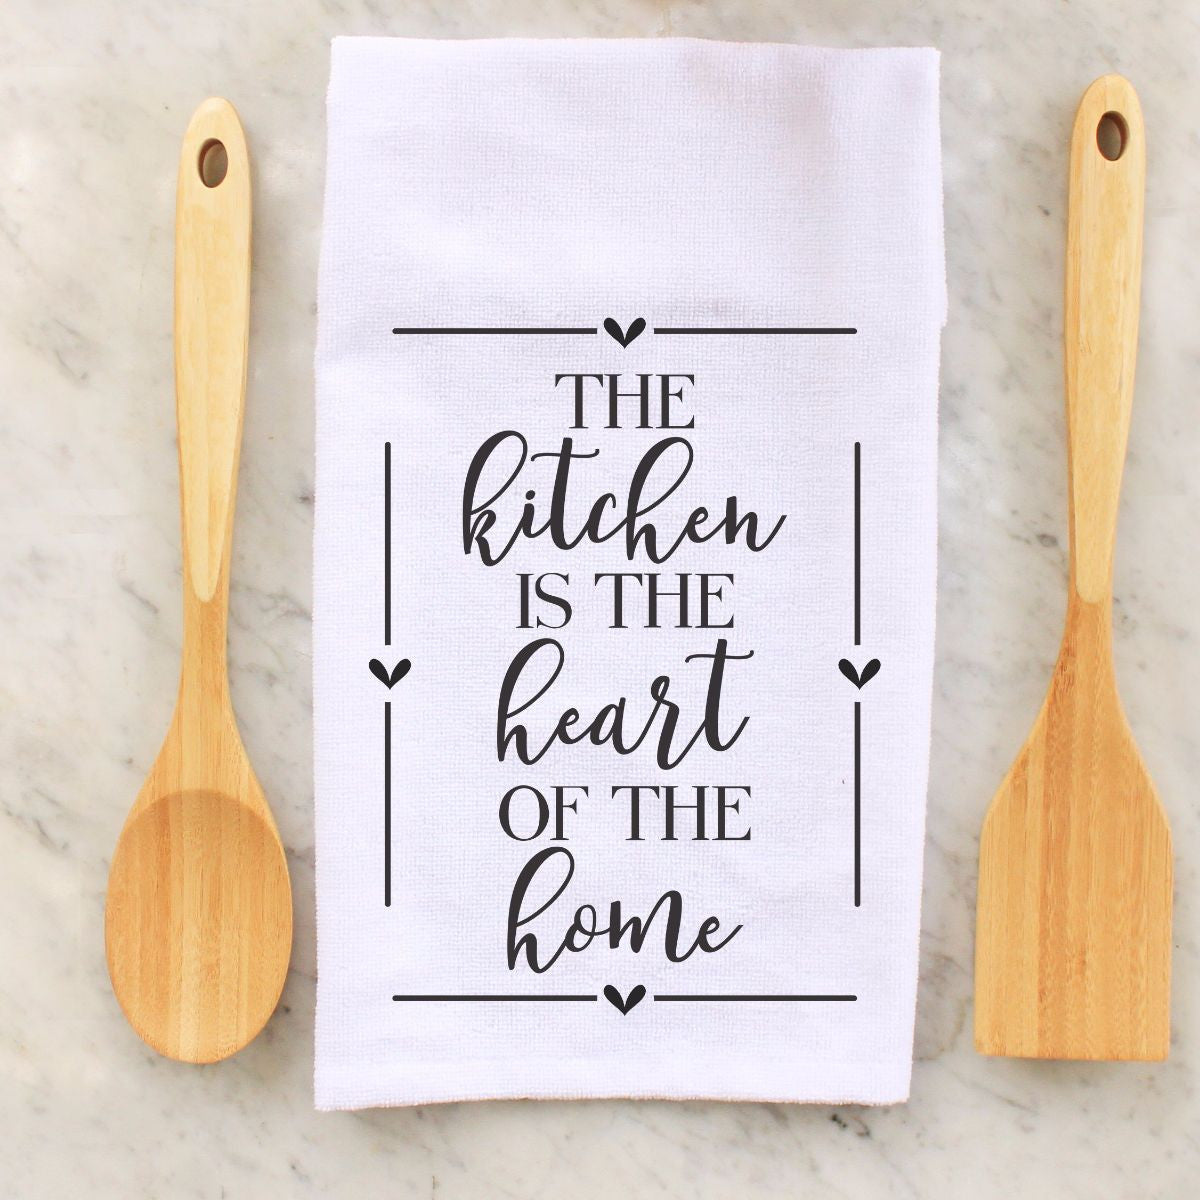 Miraculous Tea Towel The Kitchen Is The Heart Download Free Architecture Designs Sospemadebymaigaardcom